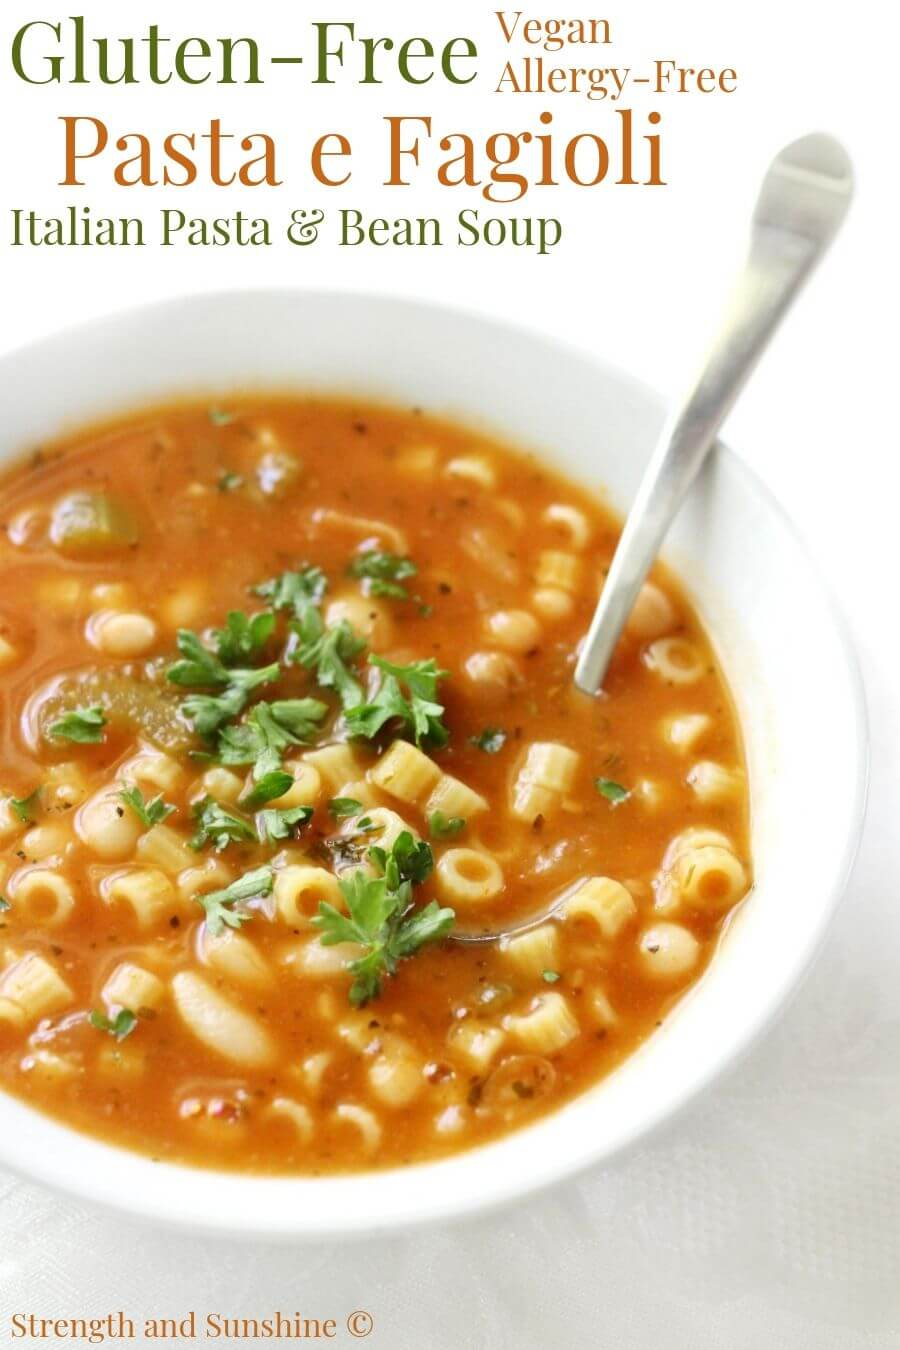 pasta e fagioli in white soup bowl with image text overlay